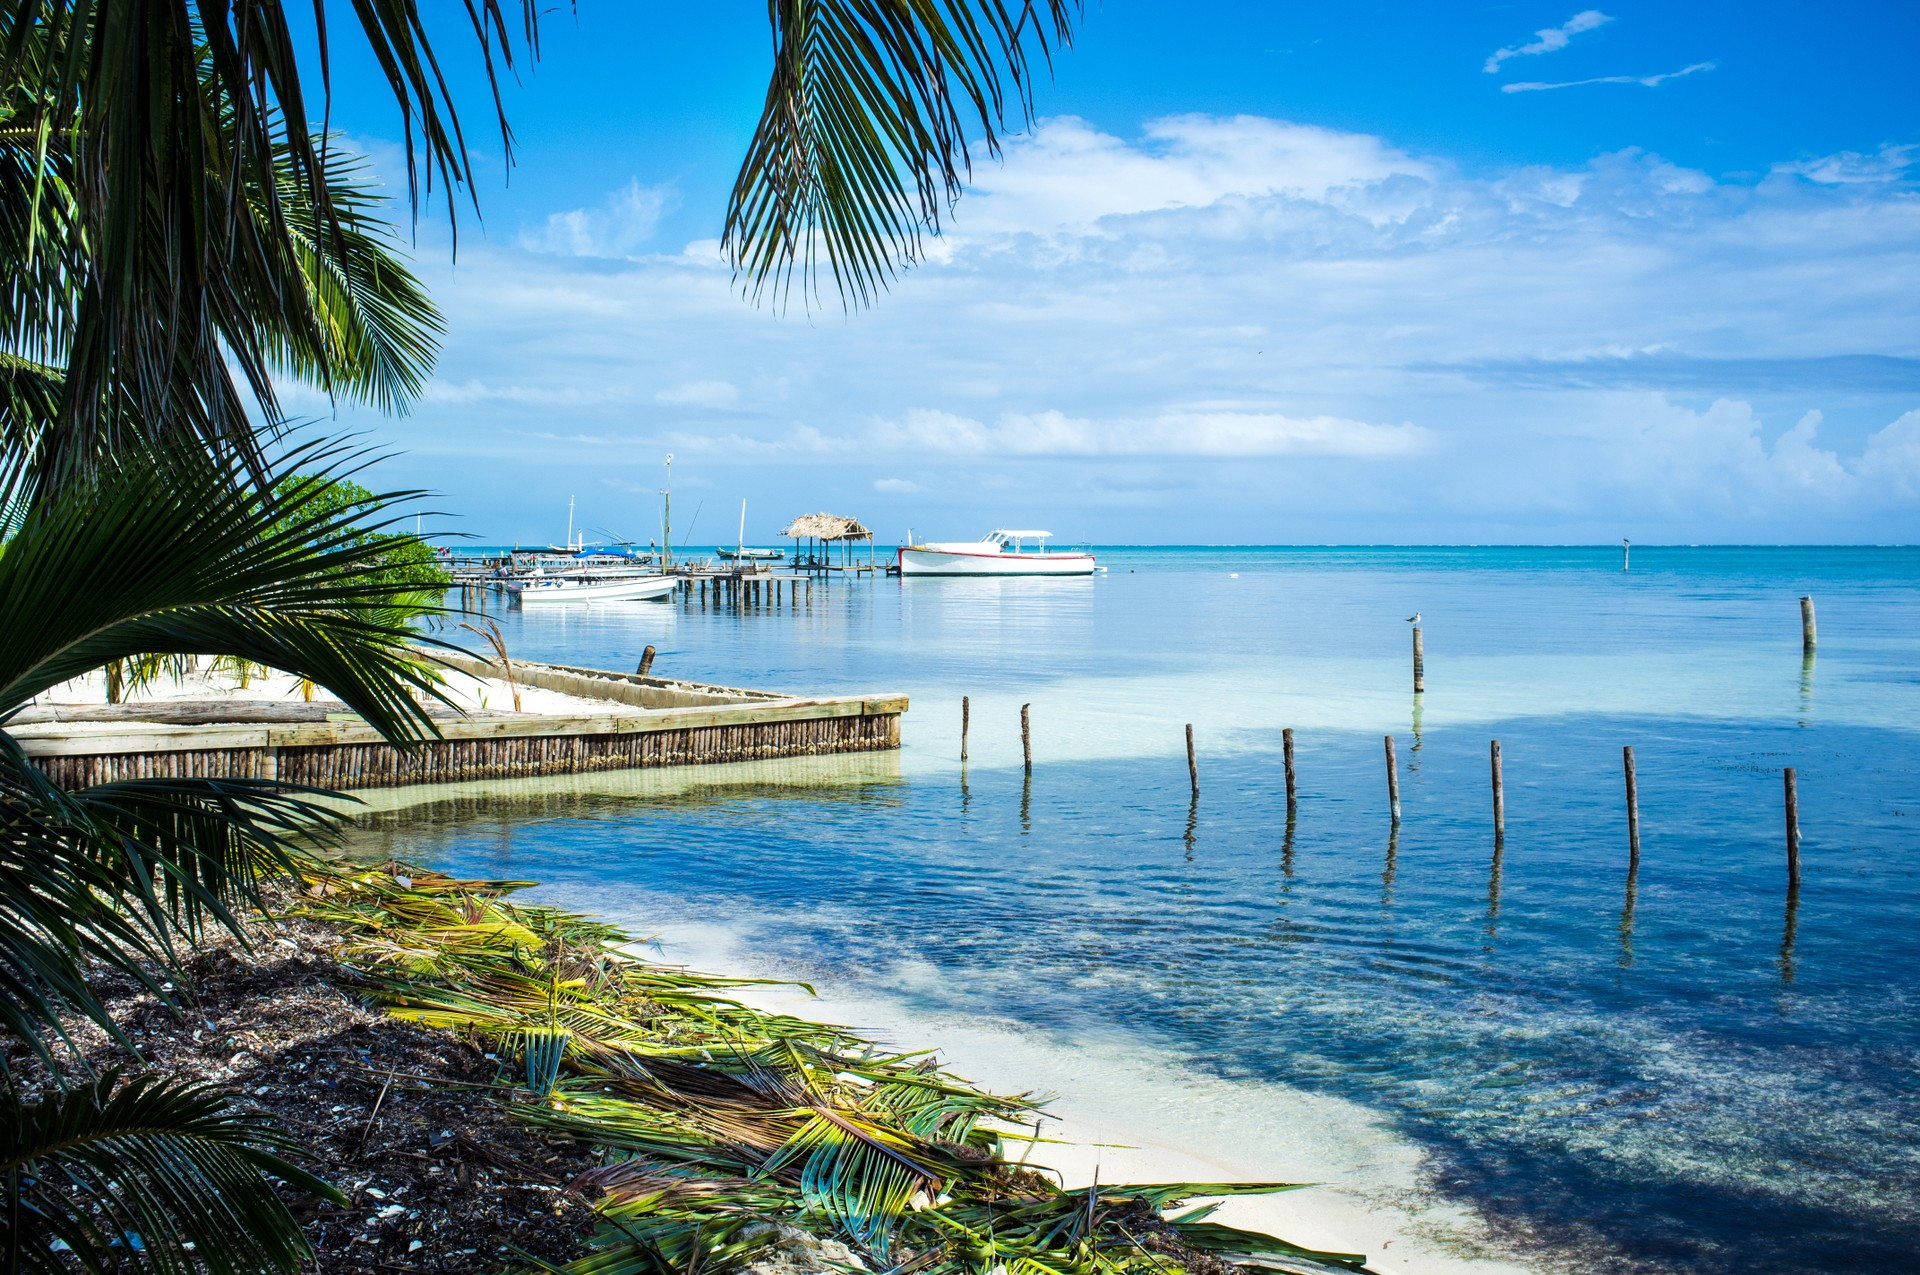 The best places to wild swimming: Caye Caulker